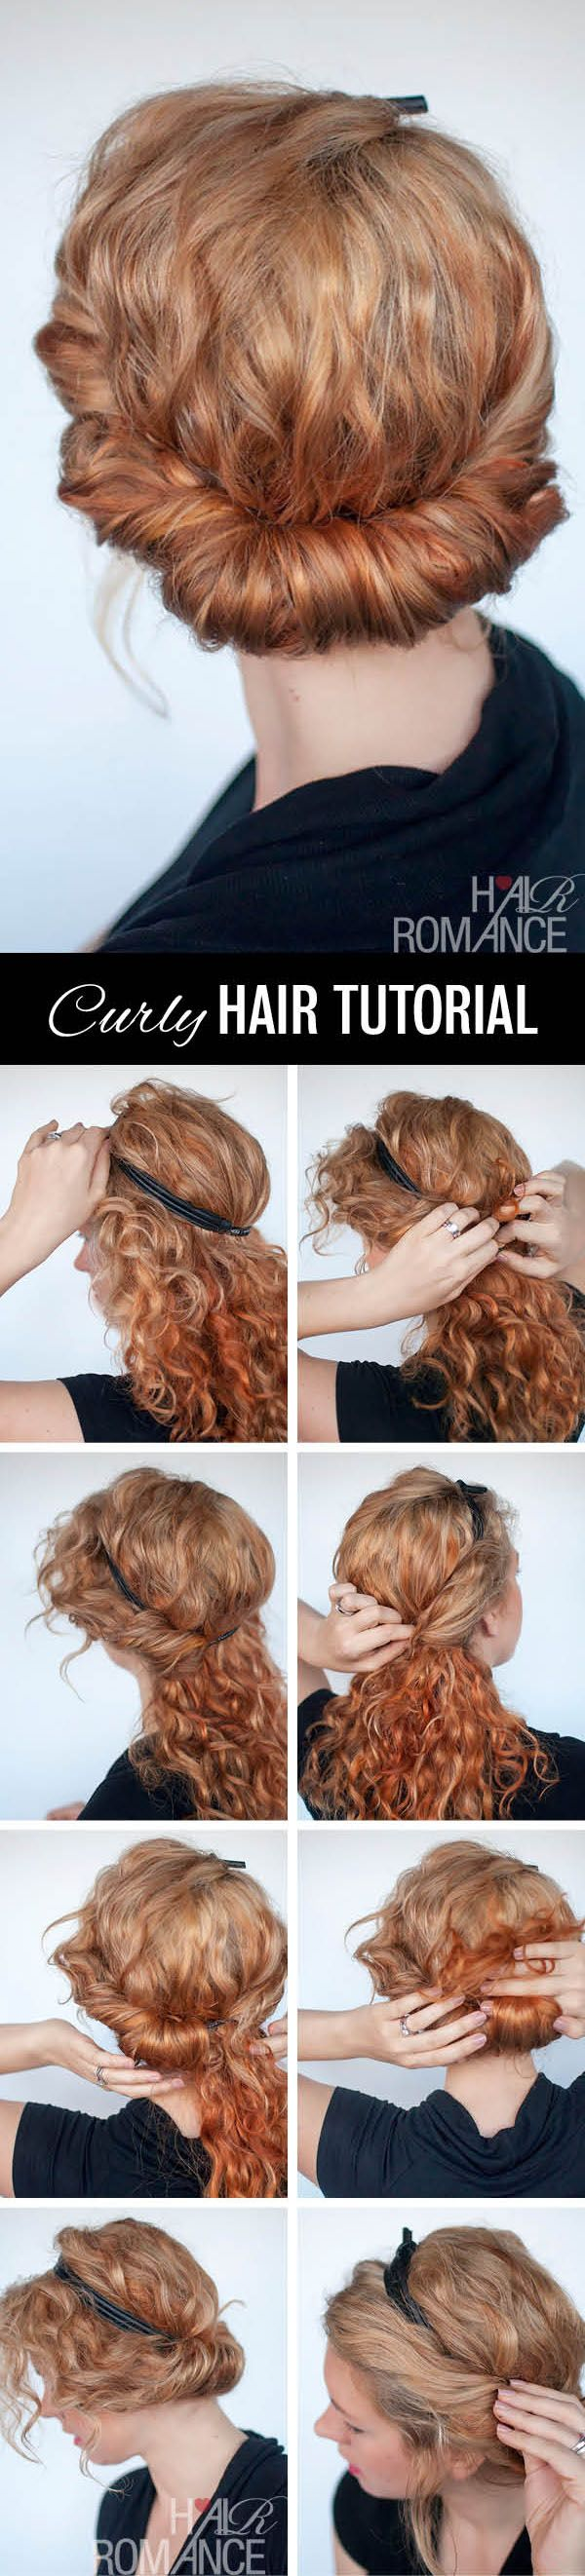 Hair romance curly hairstyle tutorial rolled headband upstyle